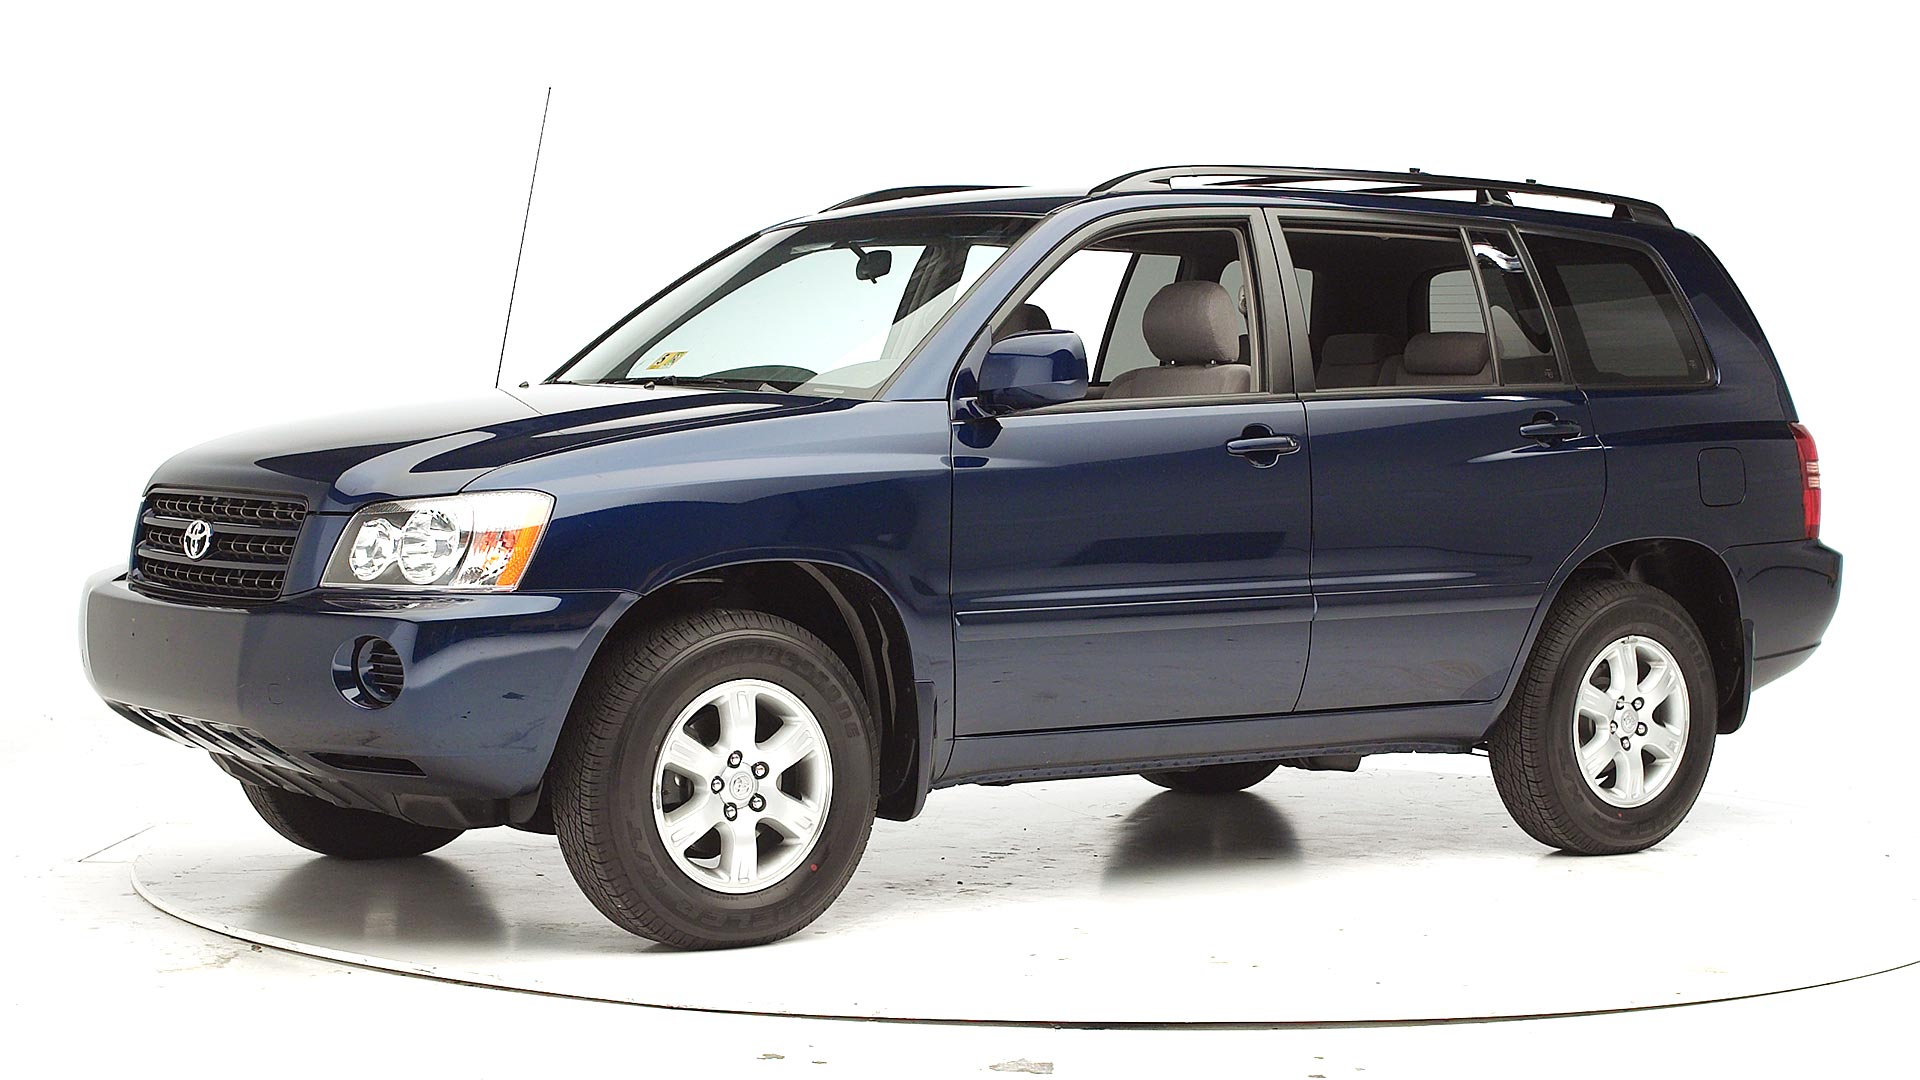 2002 Toyota Highlander 4-door SUV